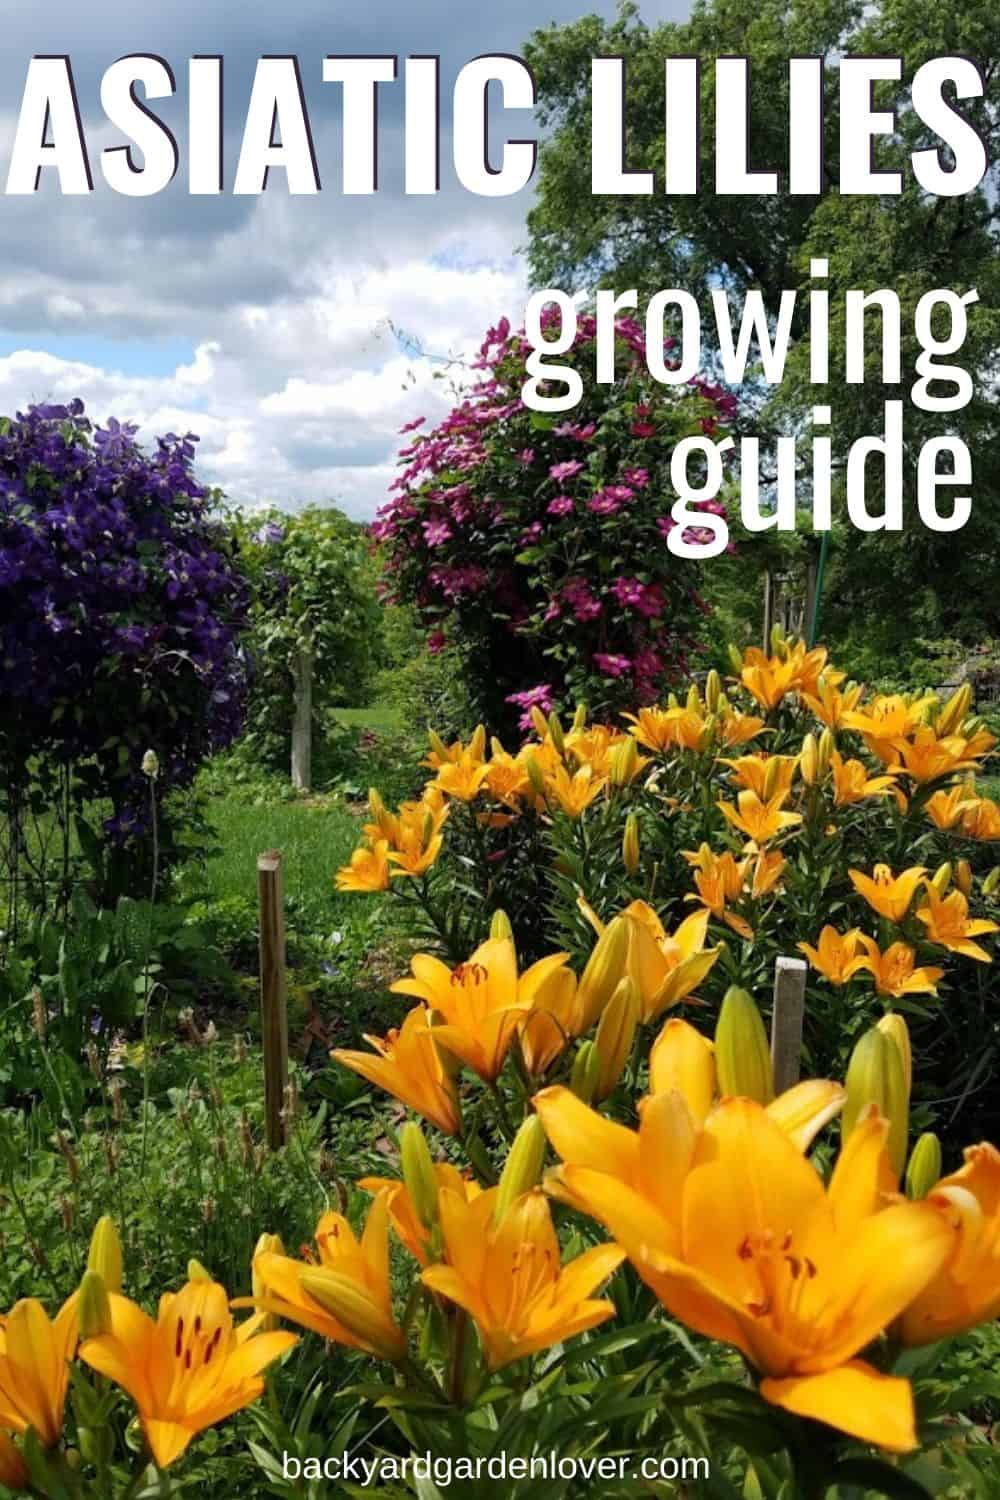 Asiatic lilies growing guide